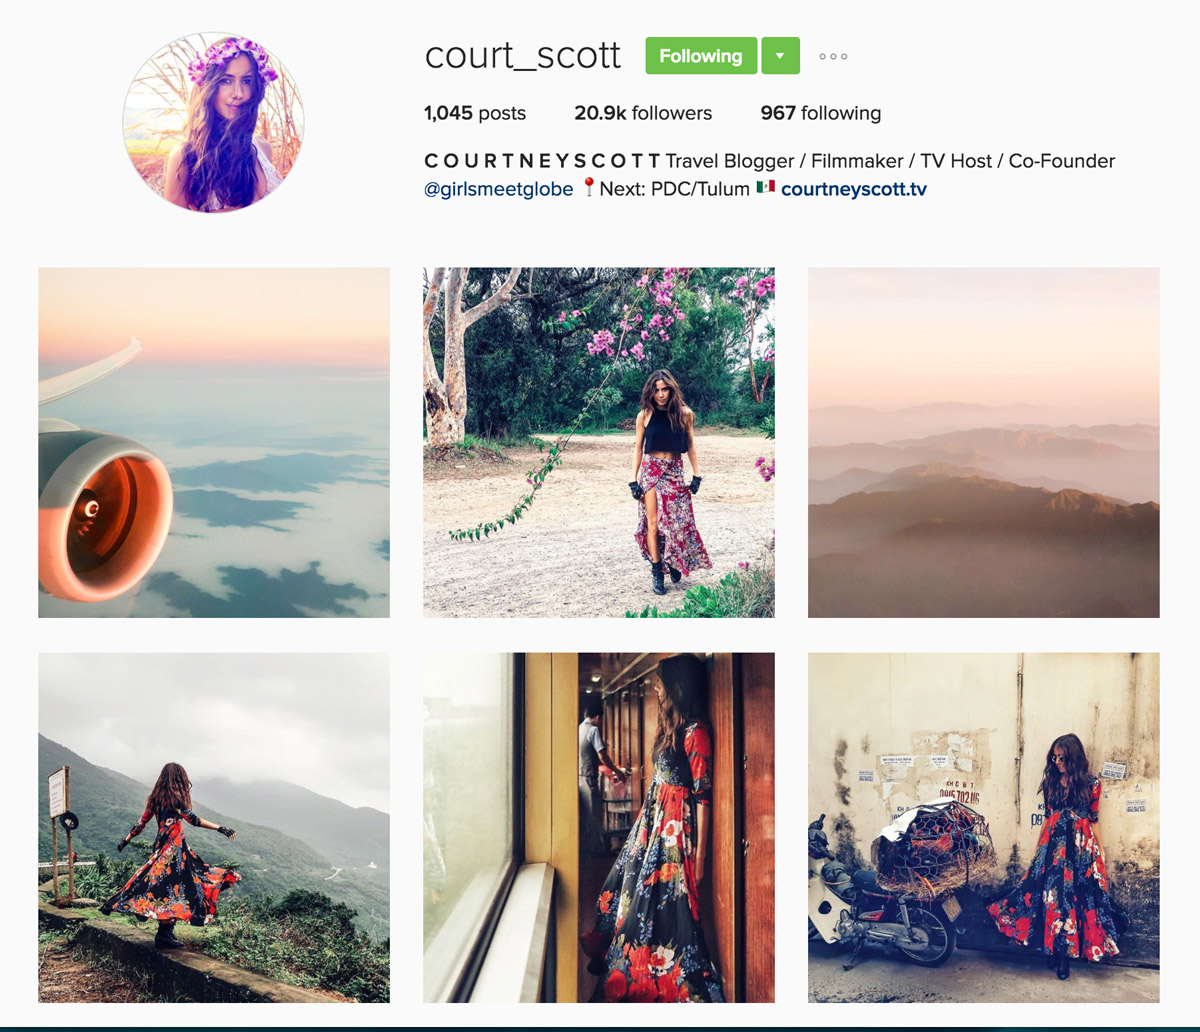 Travel-Instagram-Court-Scott